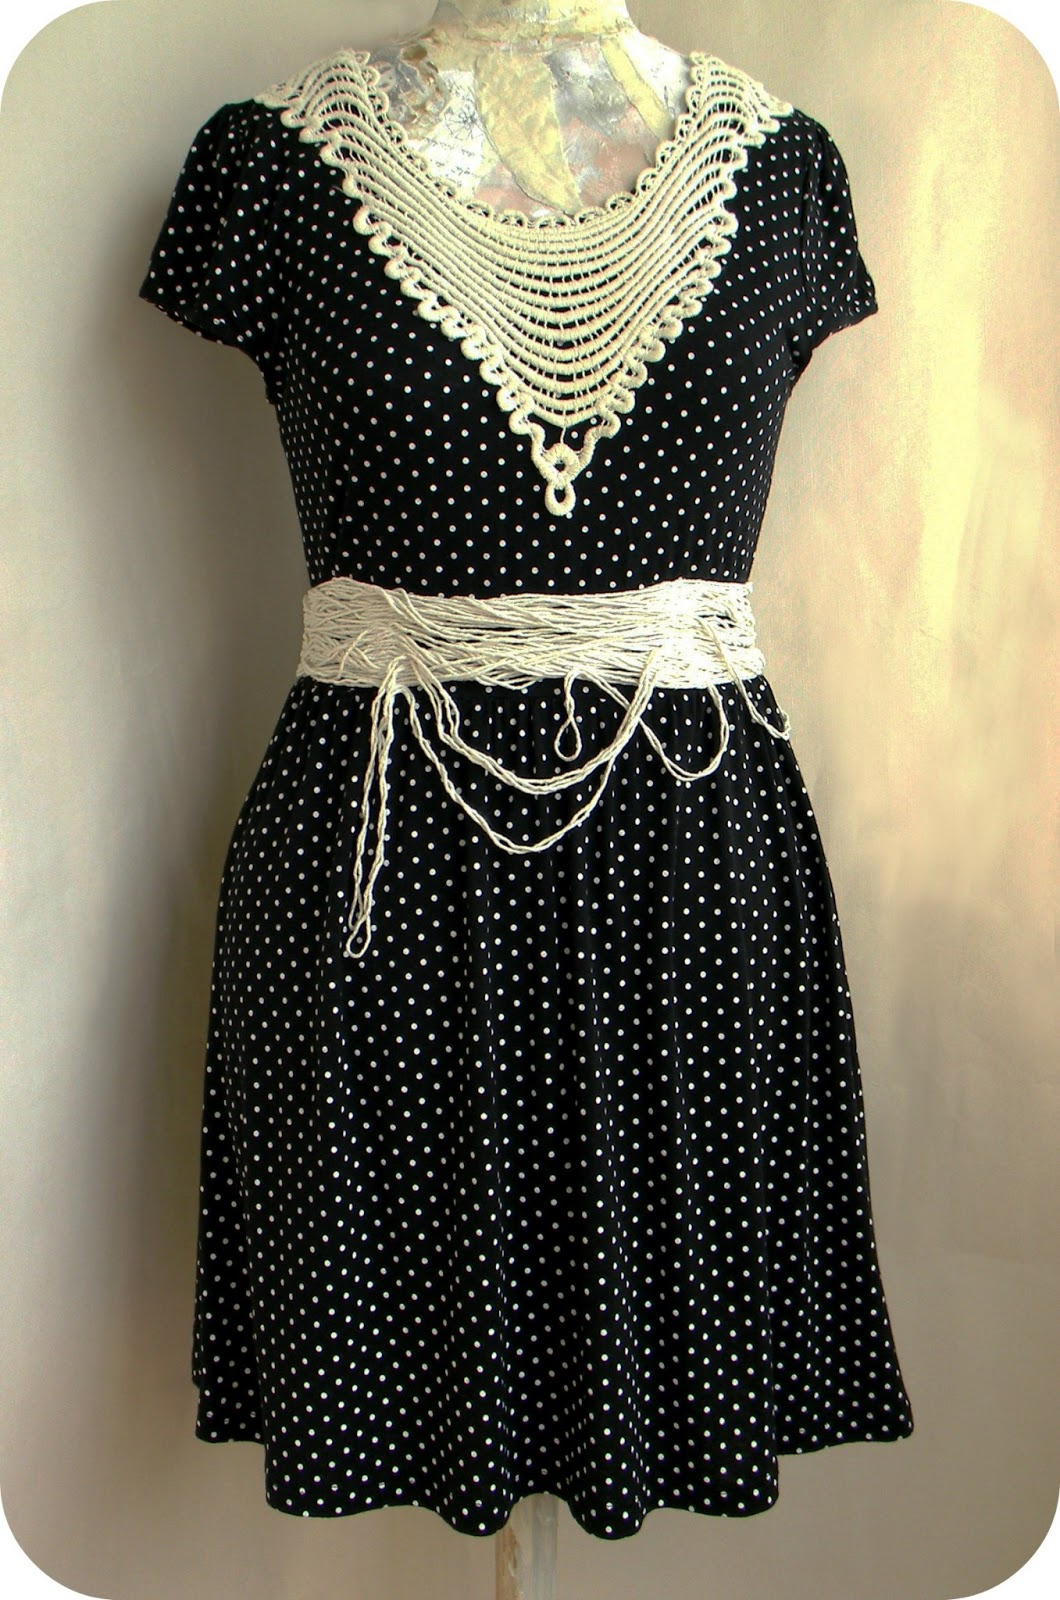 Unique fashion Retro Dress Polka Dots Handcrafted Clothing Design